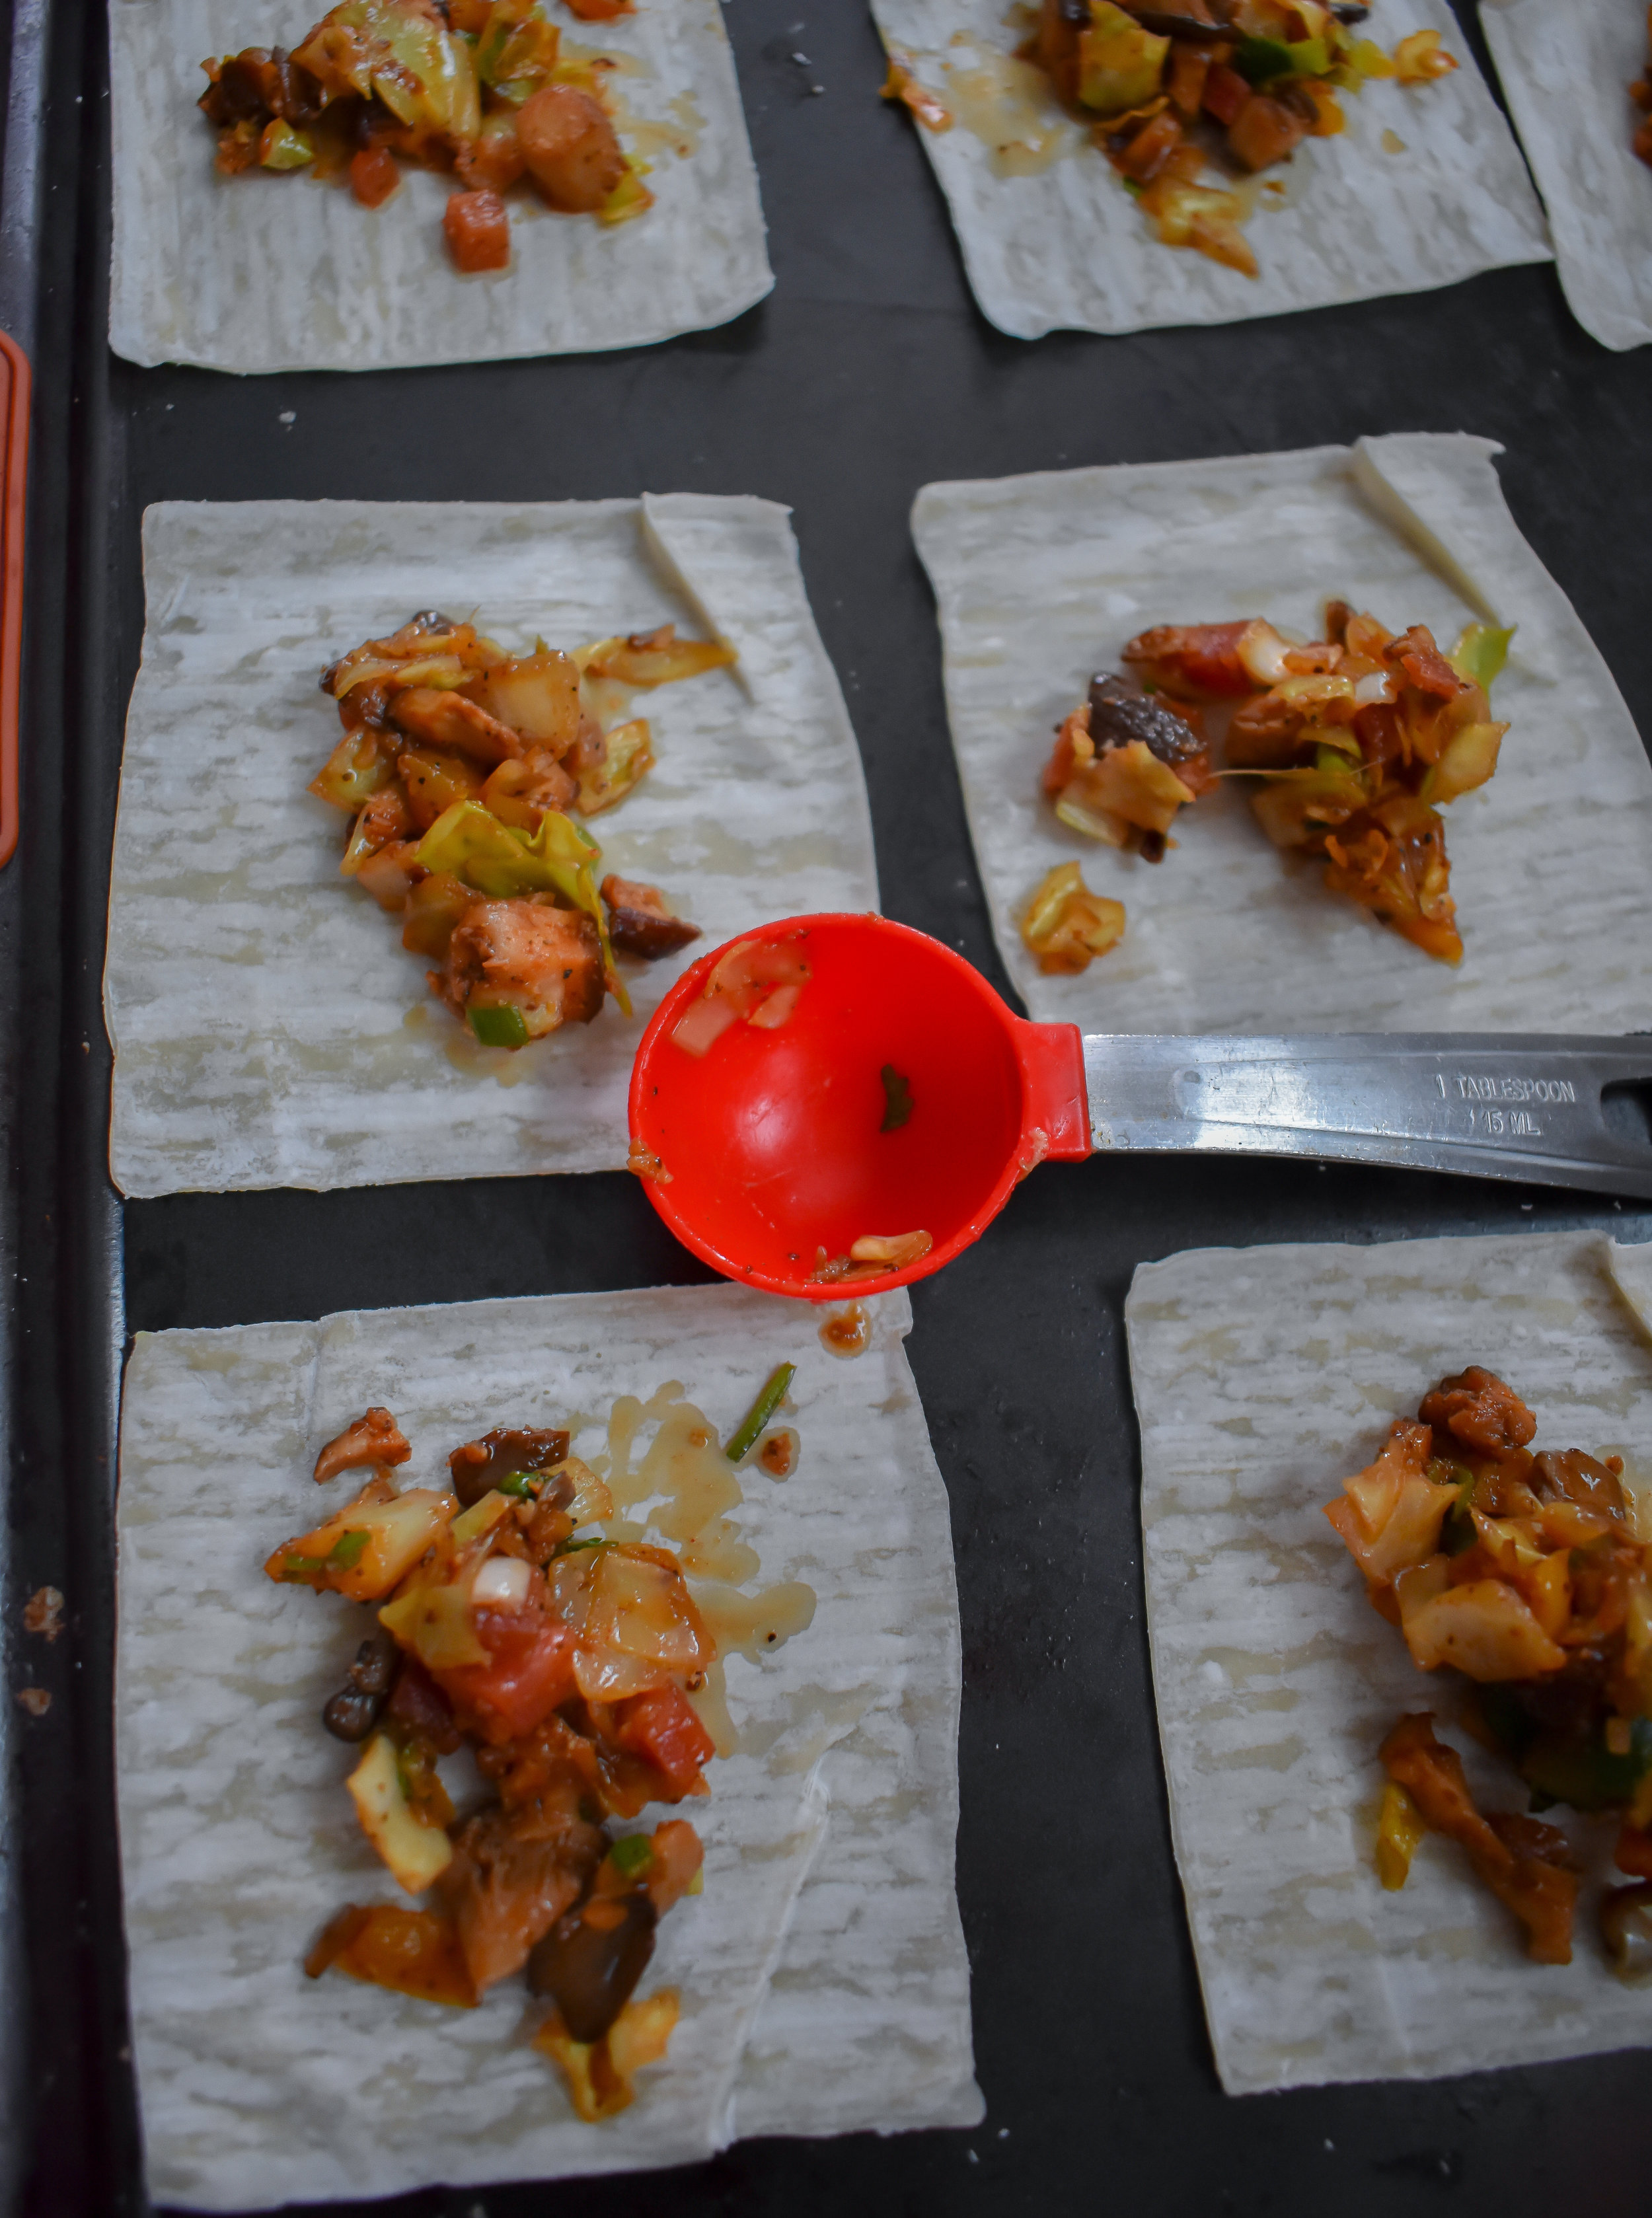 5. To set up your station, line wonton wrappers on a clean baking sheet. Grab a small bowl of water. You'll need a tablespoon as well. Scoop 1 tbl of the filling onto the wrappers. You can do all of them on the sheet at one time. You'll do a couple rounds.